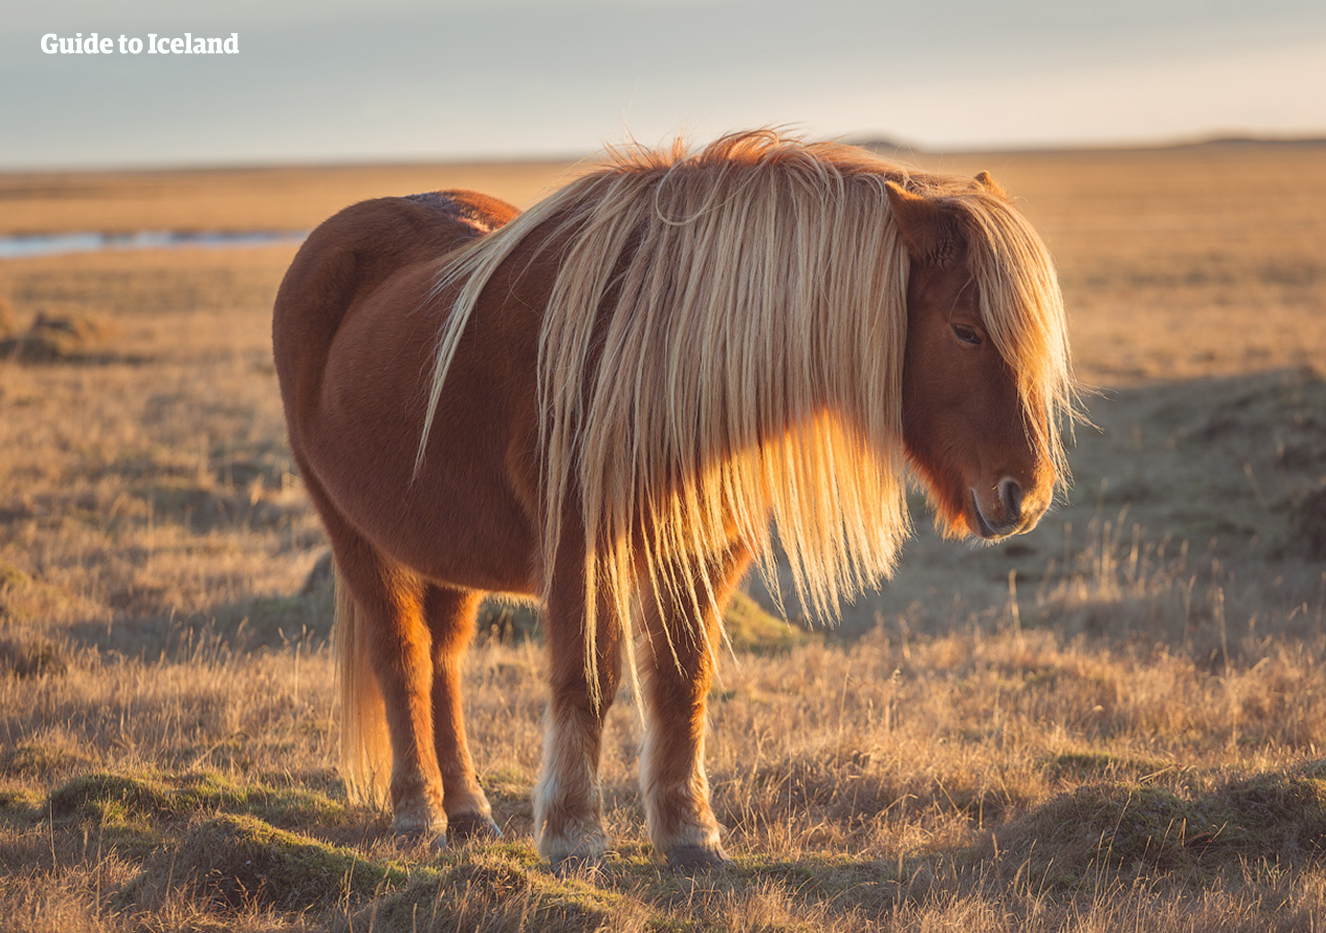 The Icelandic horse is a friendly creature with a thousand years of evolutionary isolation.